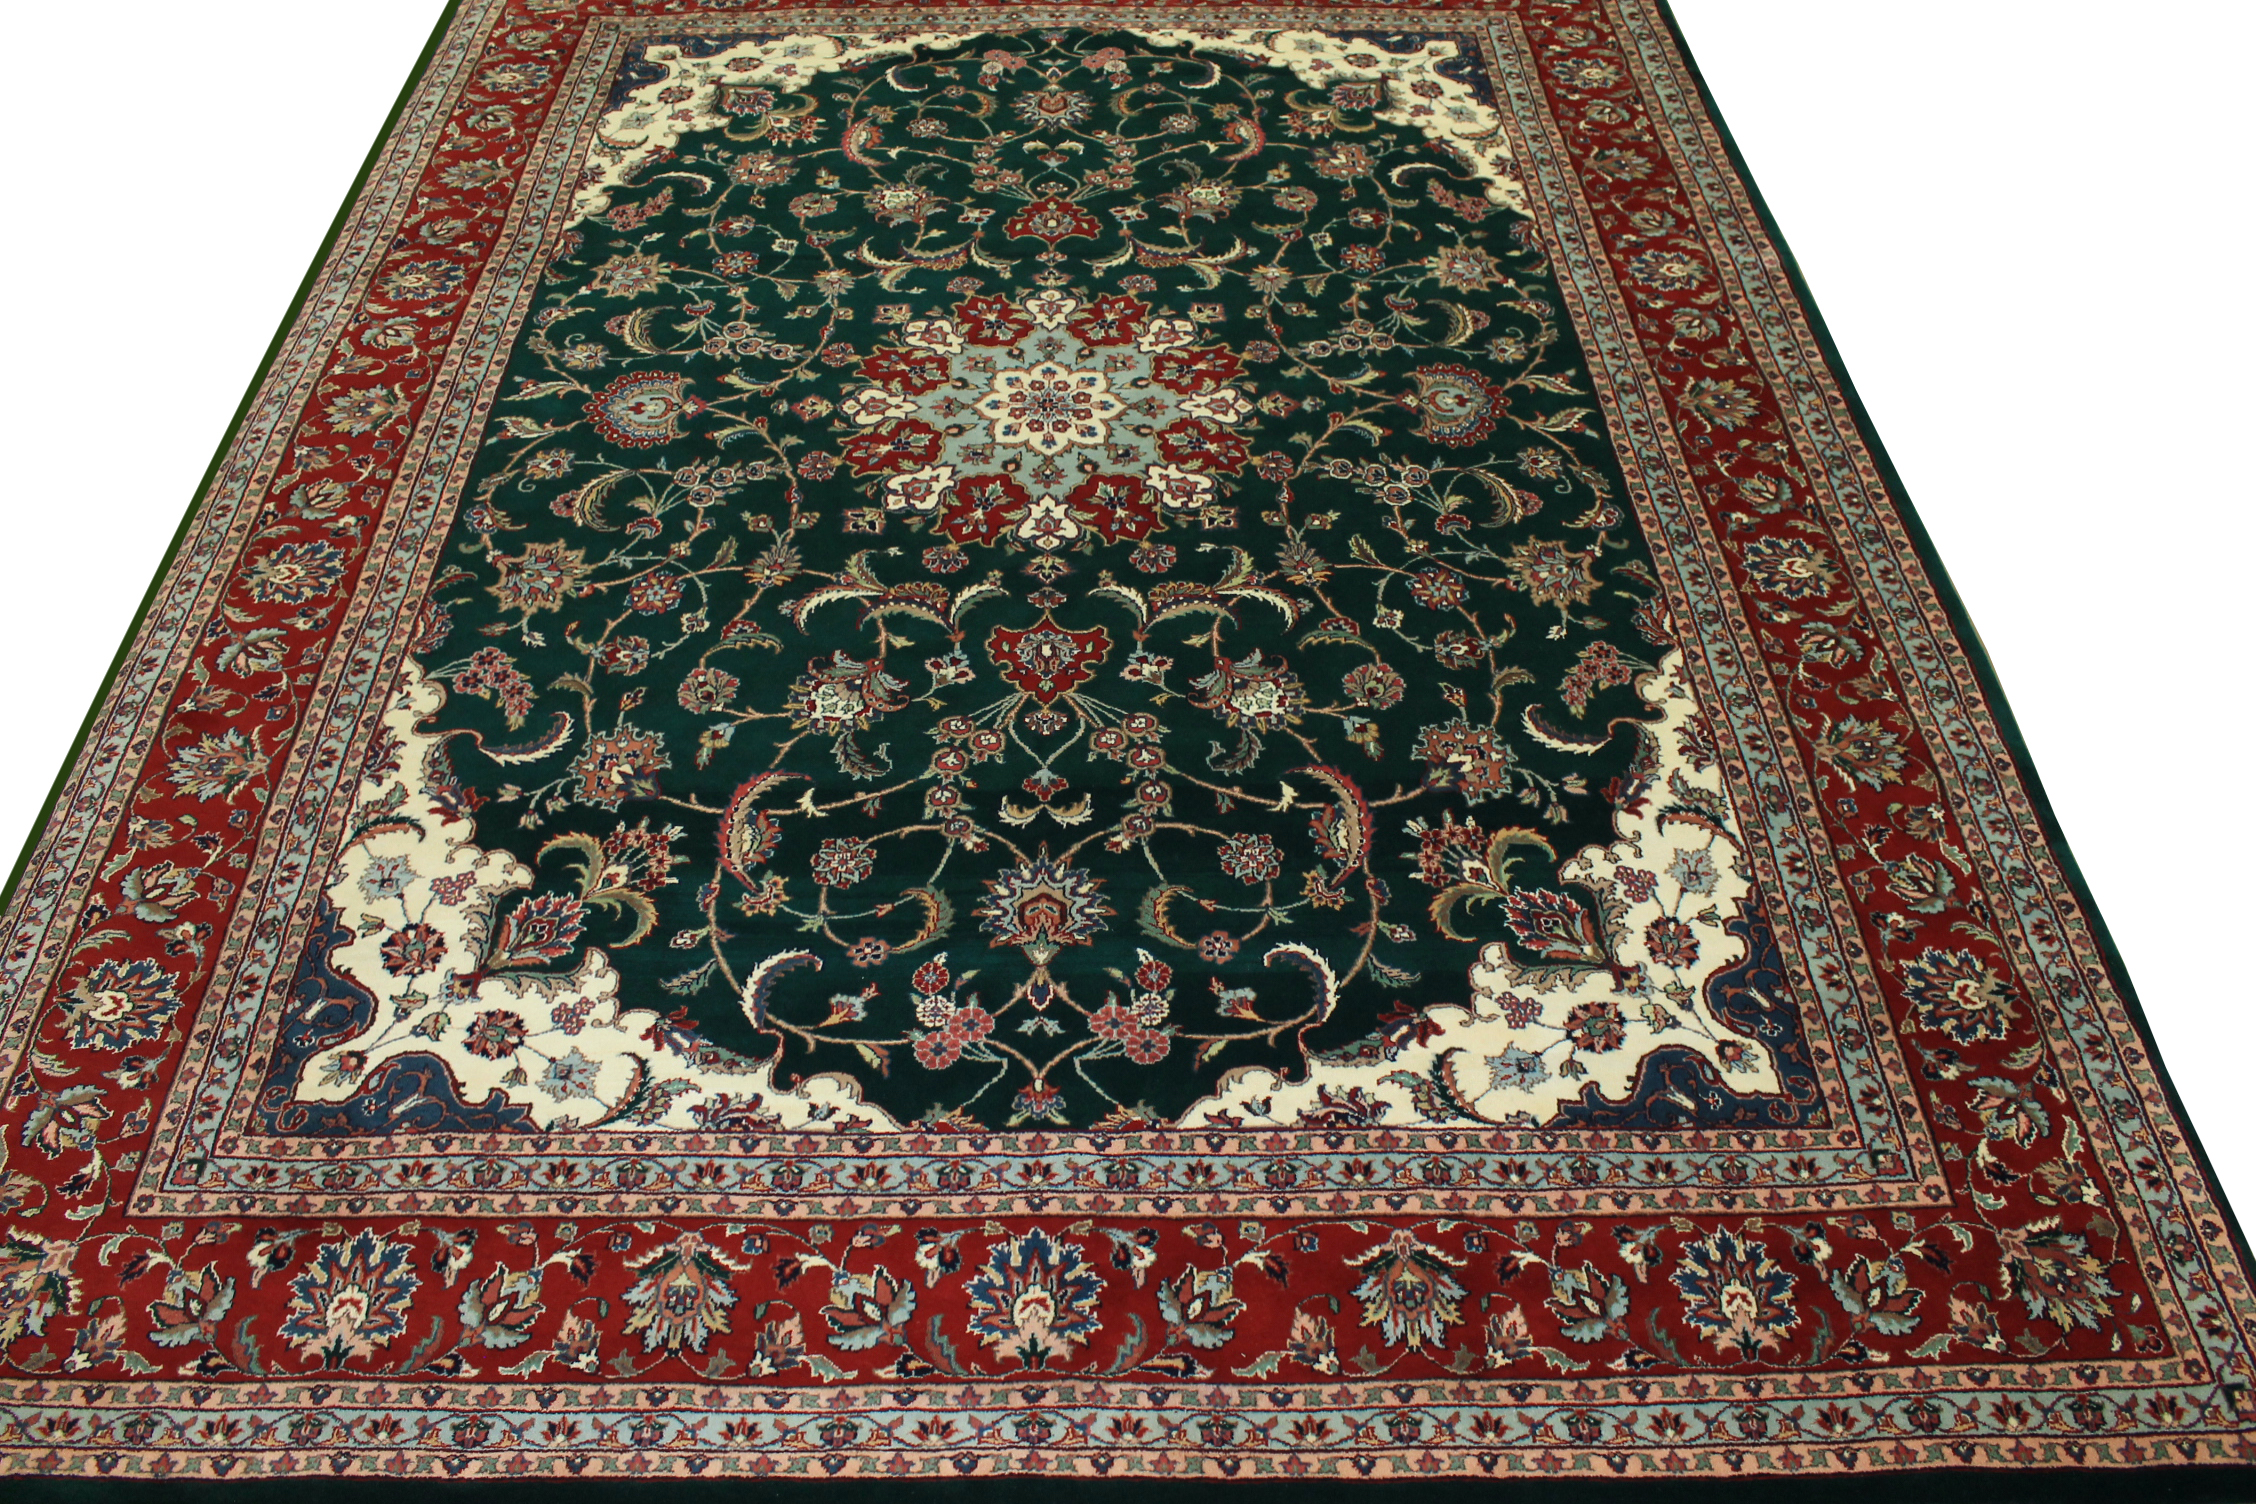 9x12 Traditional Hand Knotted Wool Area Rug - MR0762